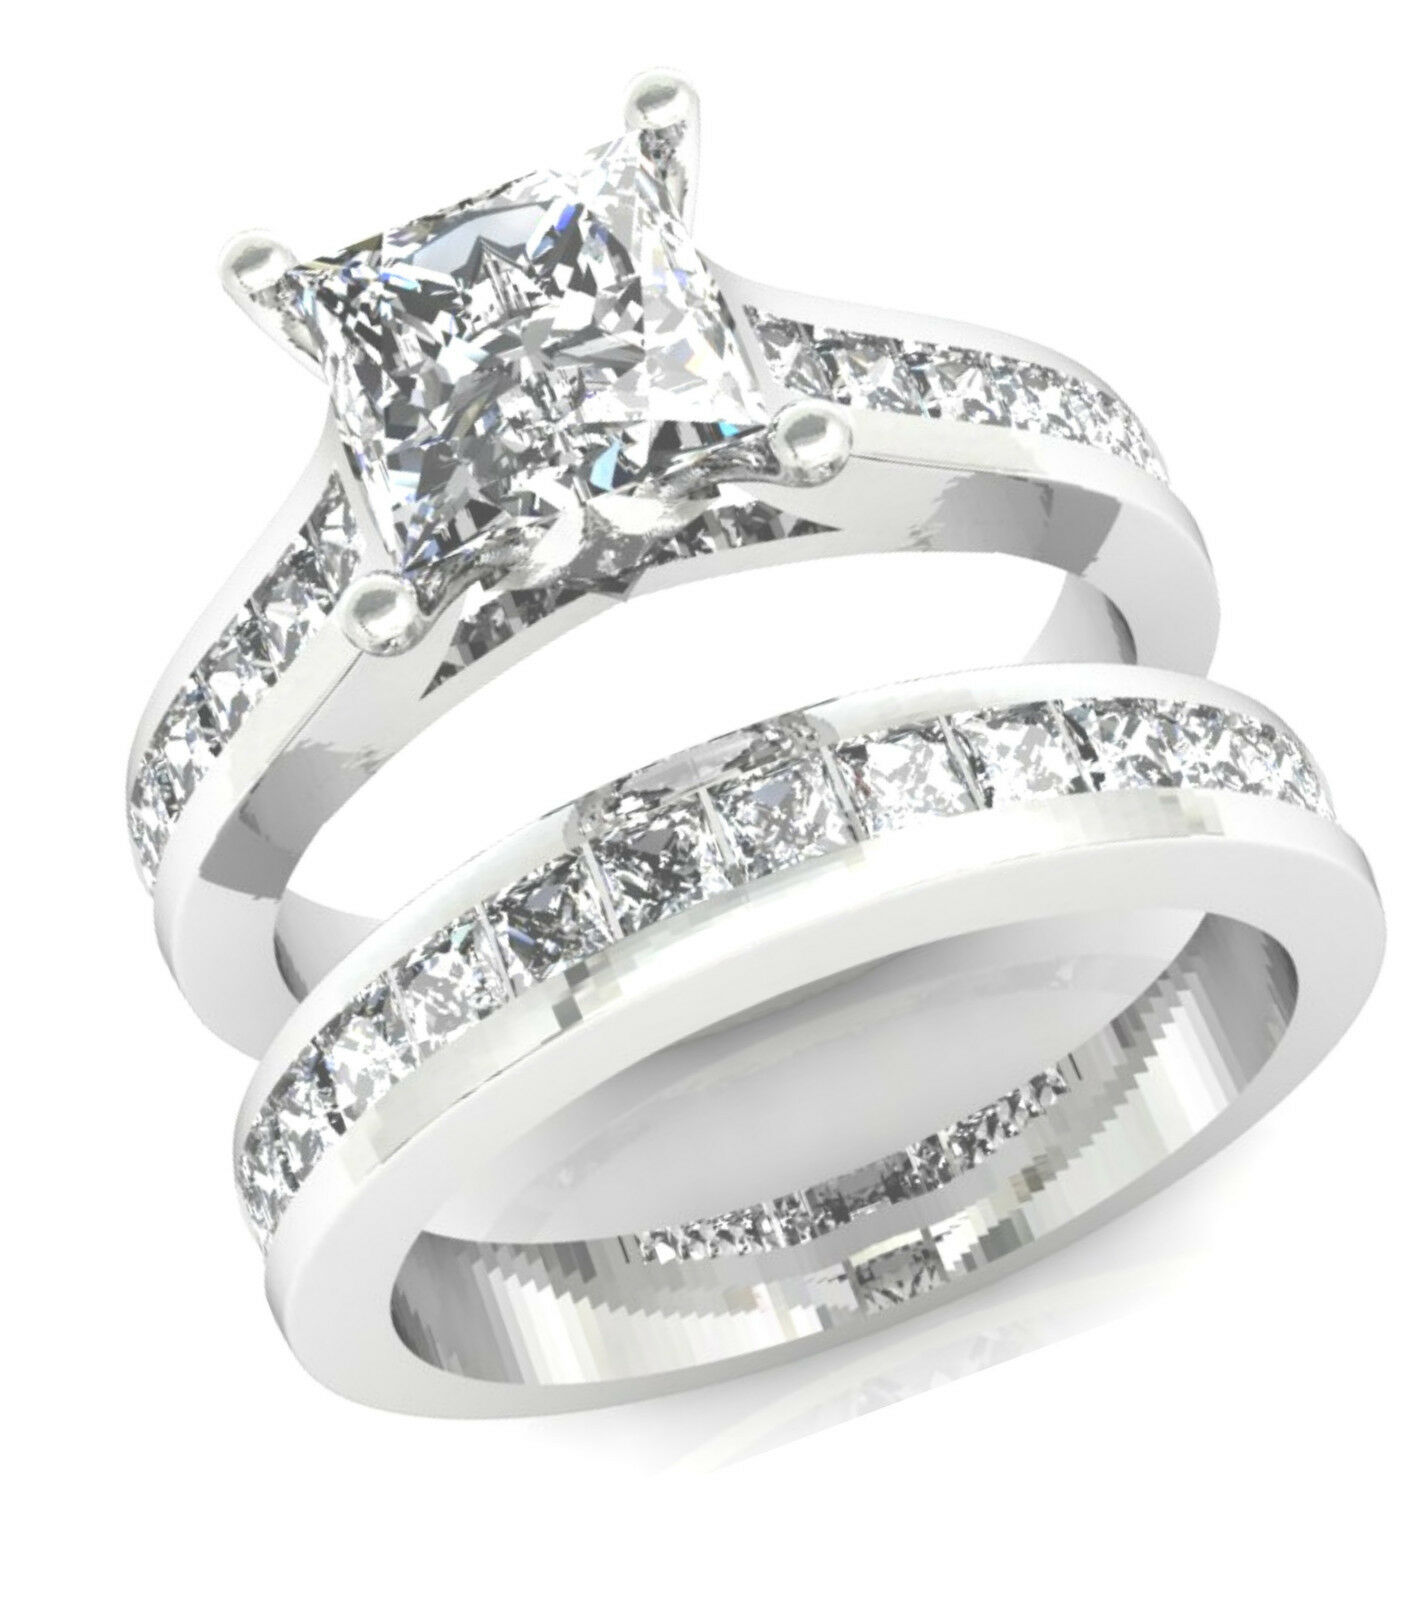 3.2CT PRINCESS CUT CHANNEL SET ENGAGEMENT RING WEDDING ...